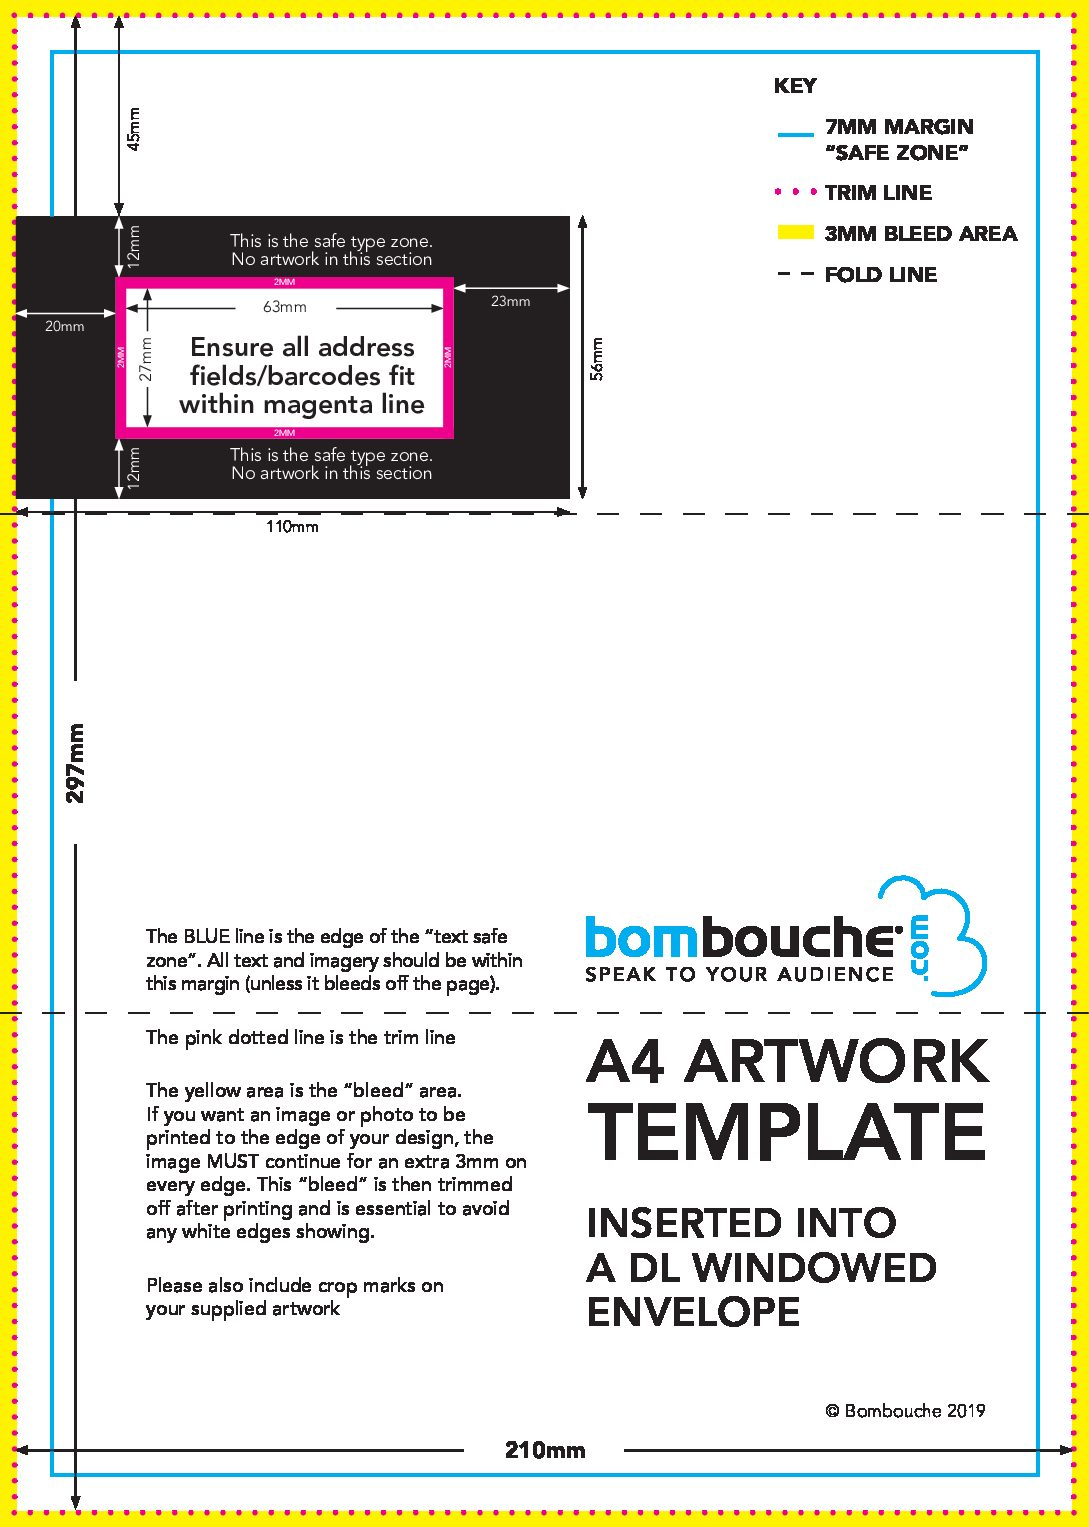 a4 artwork dl envelope template 2019 direct printing and mailing